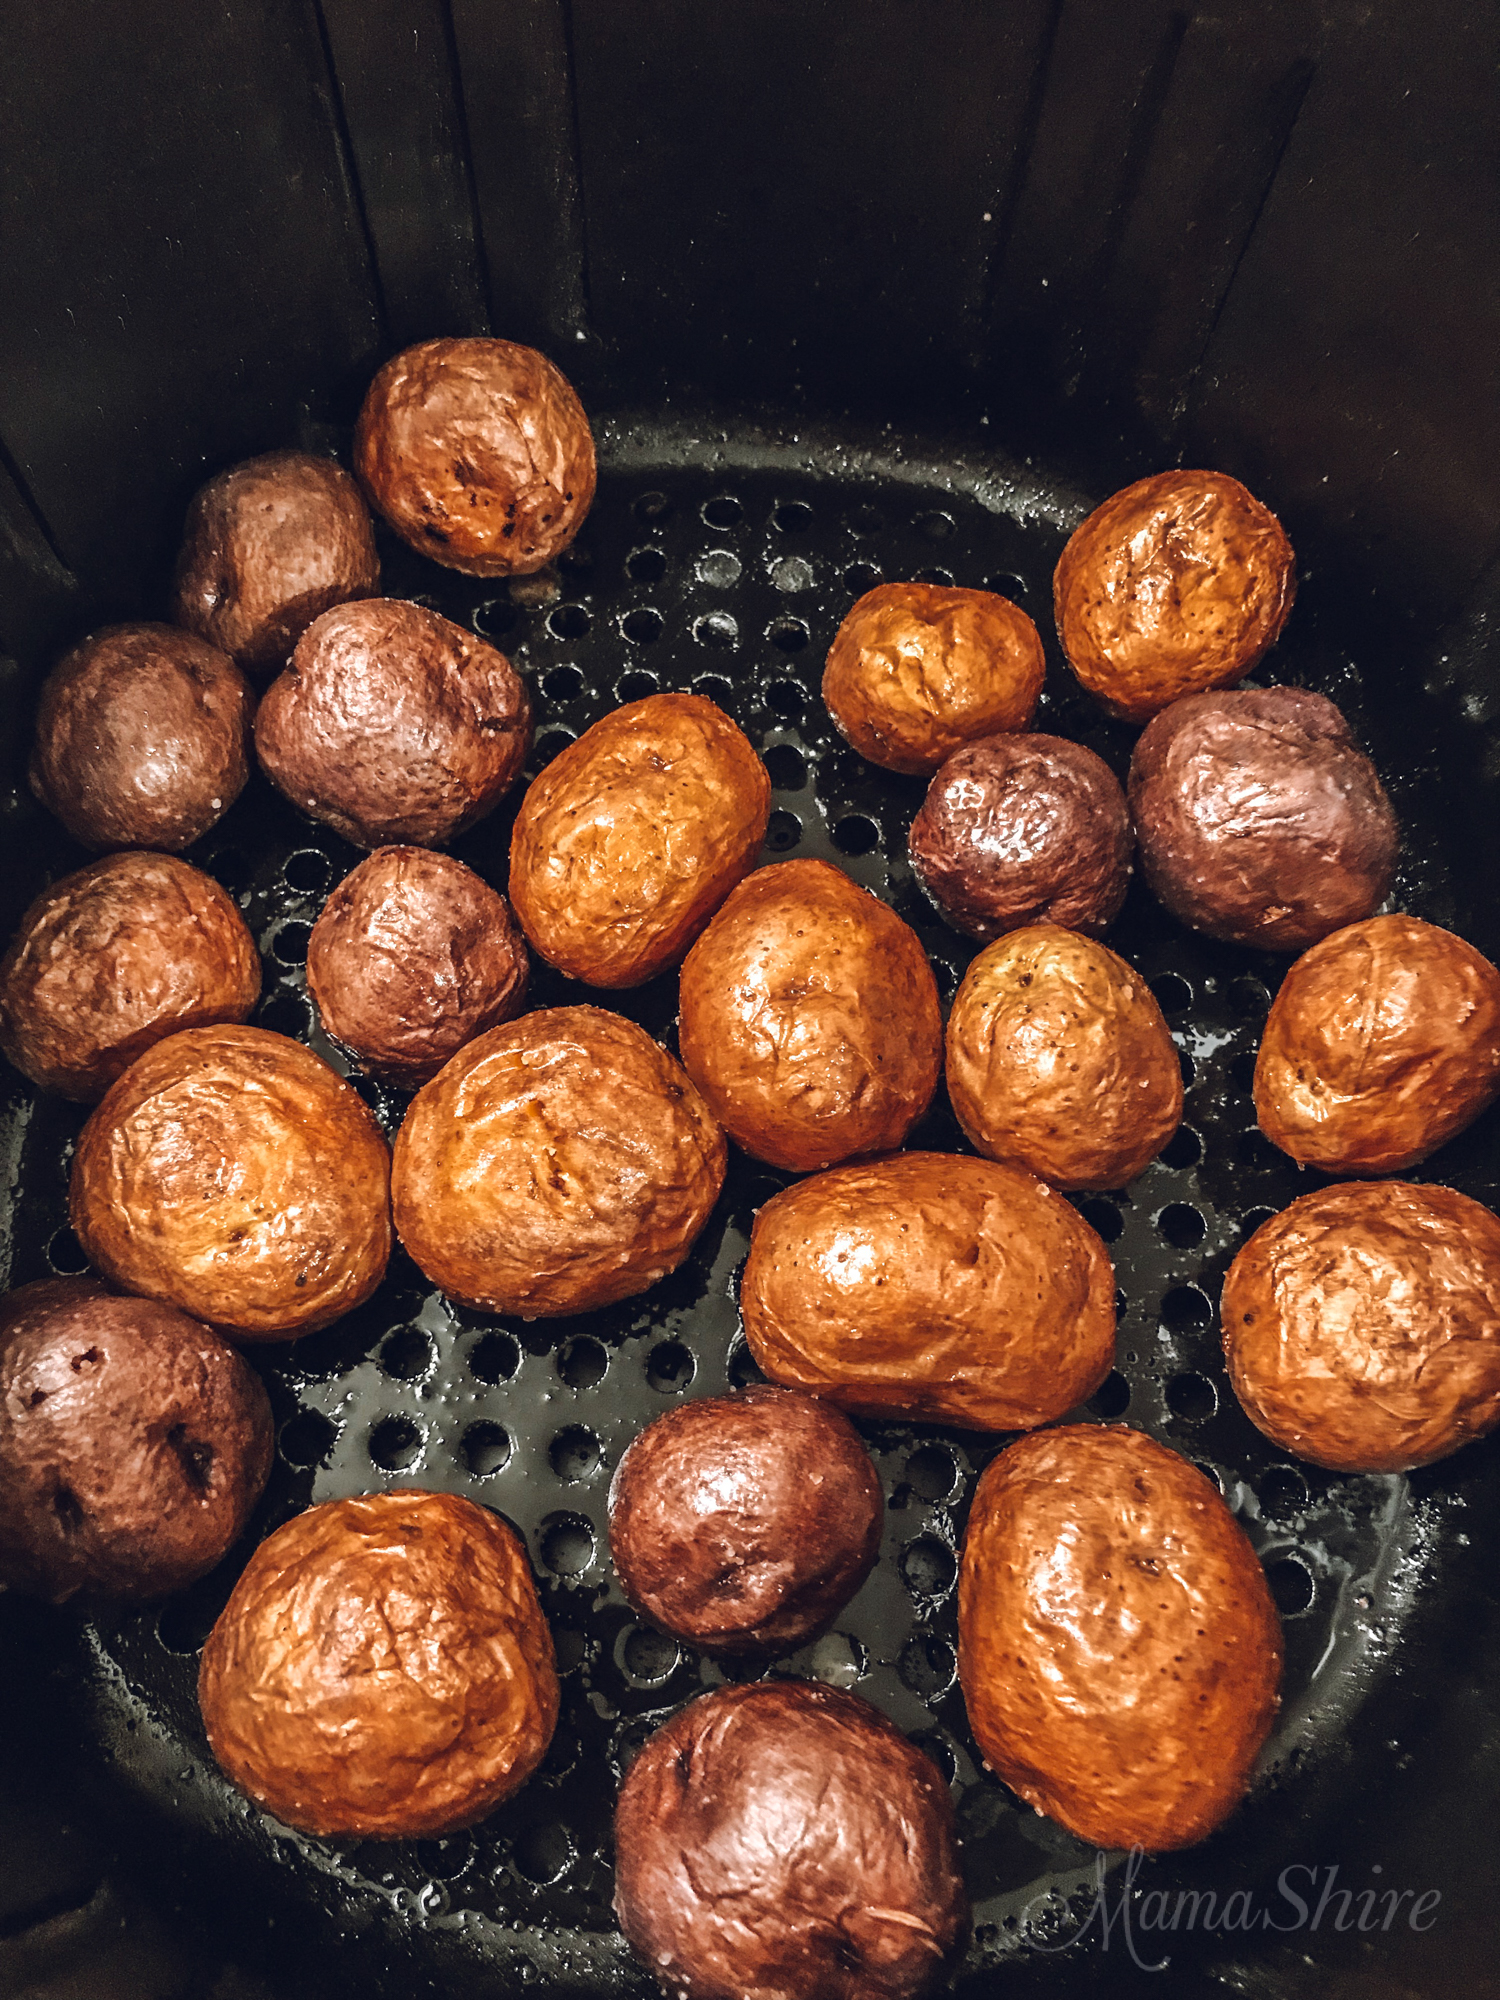 Baby potatoes in the basket of an air fryer.